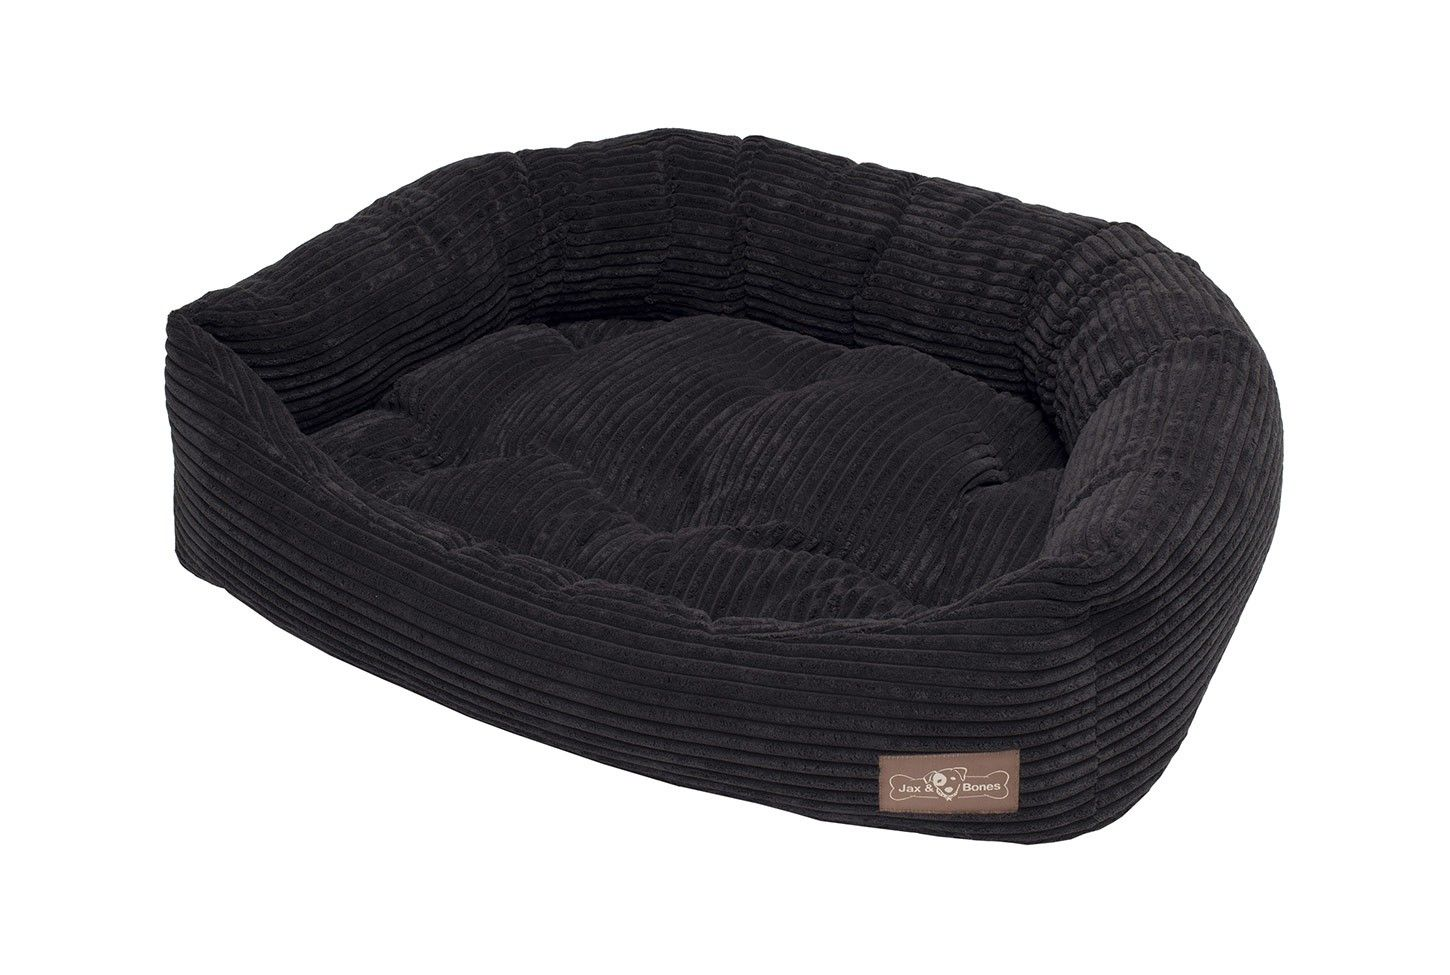 Midnight Napper Bed Napper Bedding Pet Products